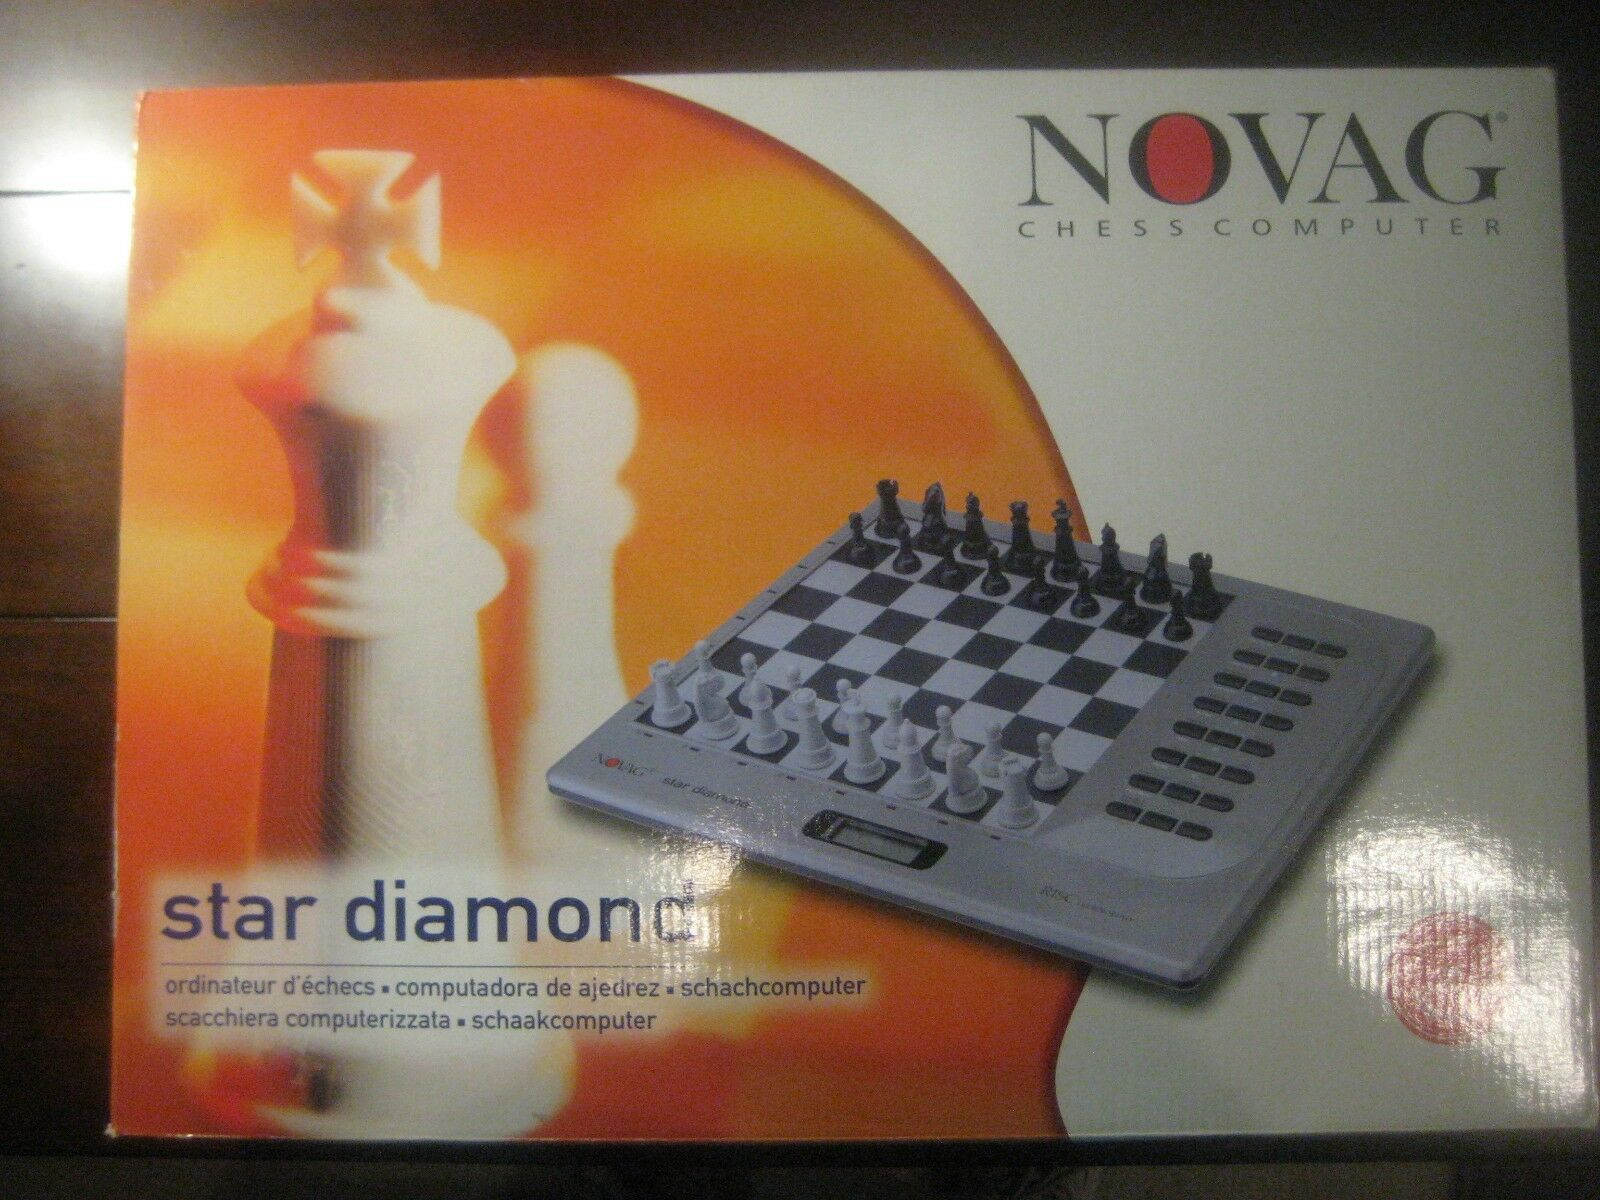 Novag Star Diamond  Chess ordinateur électronique, très forte, Schachcomputer, Clean  magasin fashional à vendre